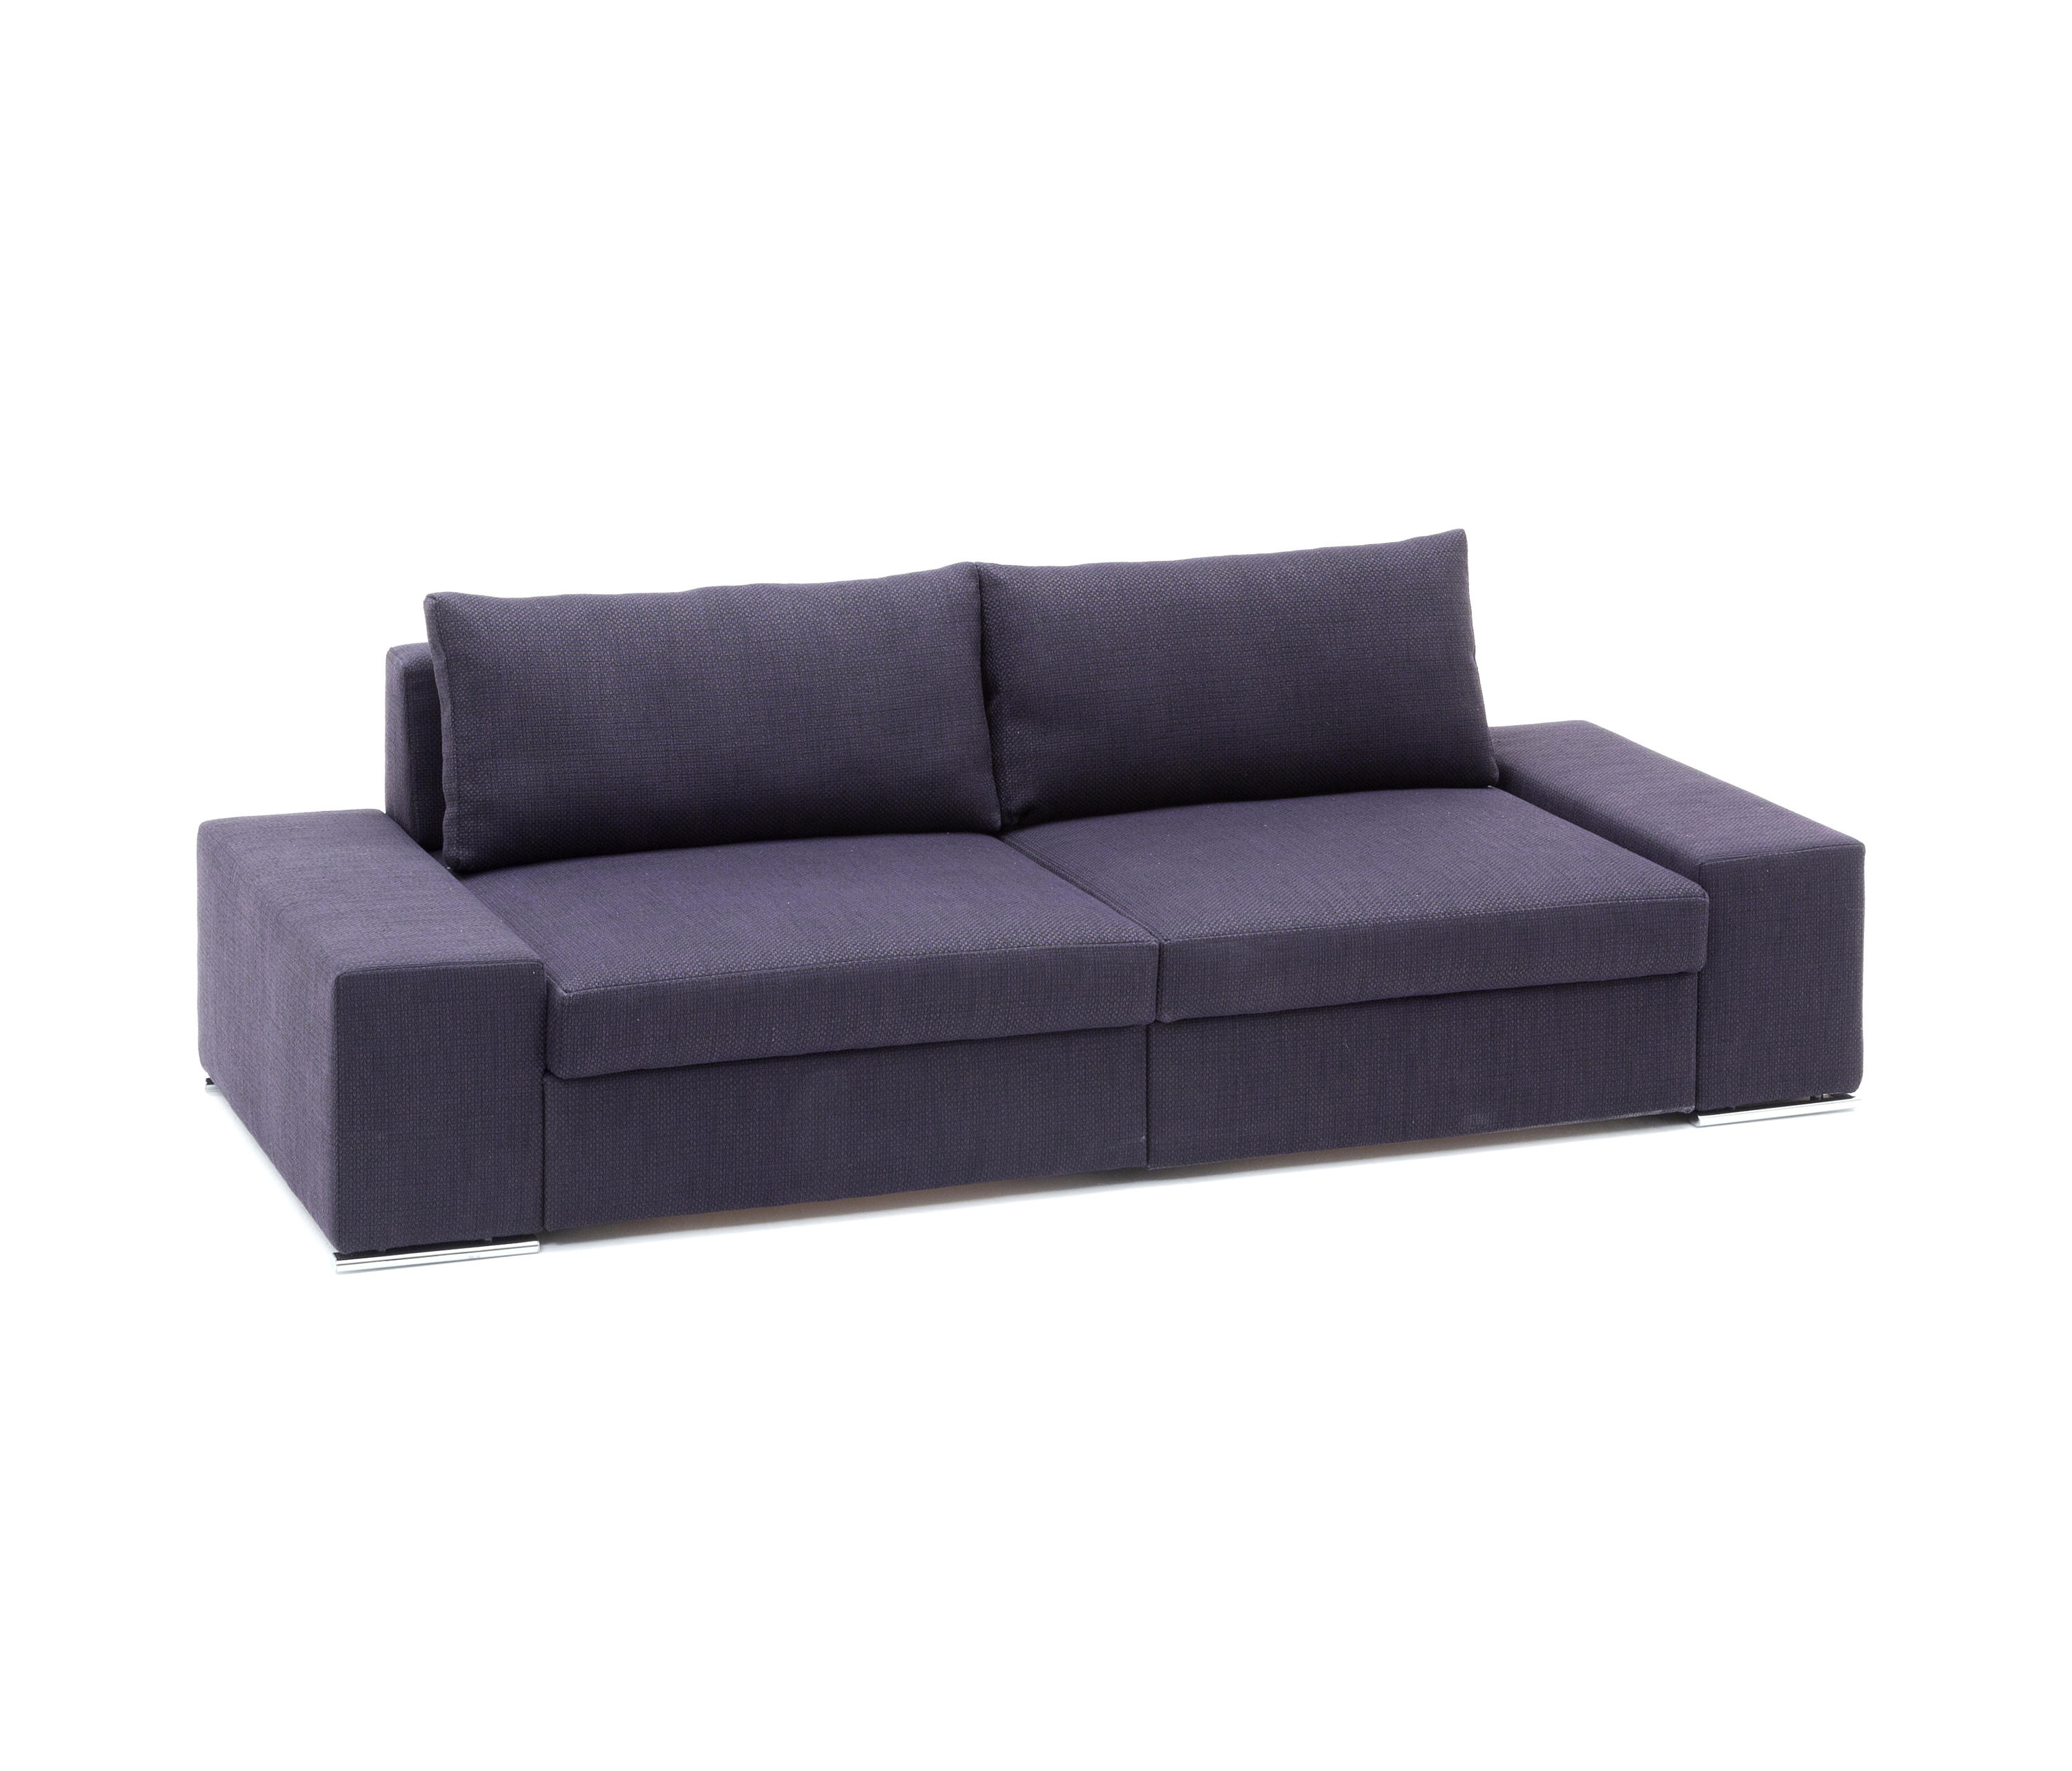 Club Couch Sofa Beds From Die Collection Architonic